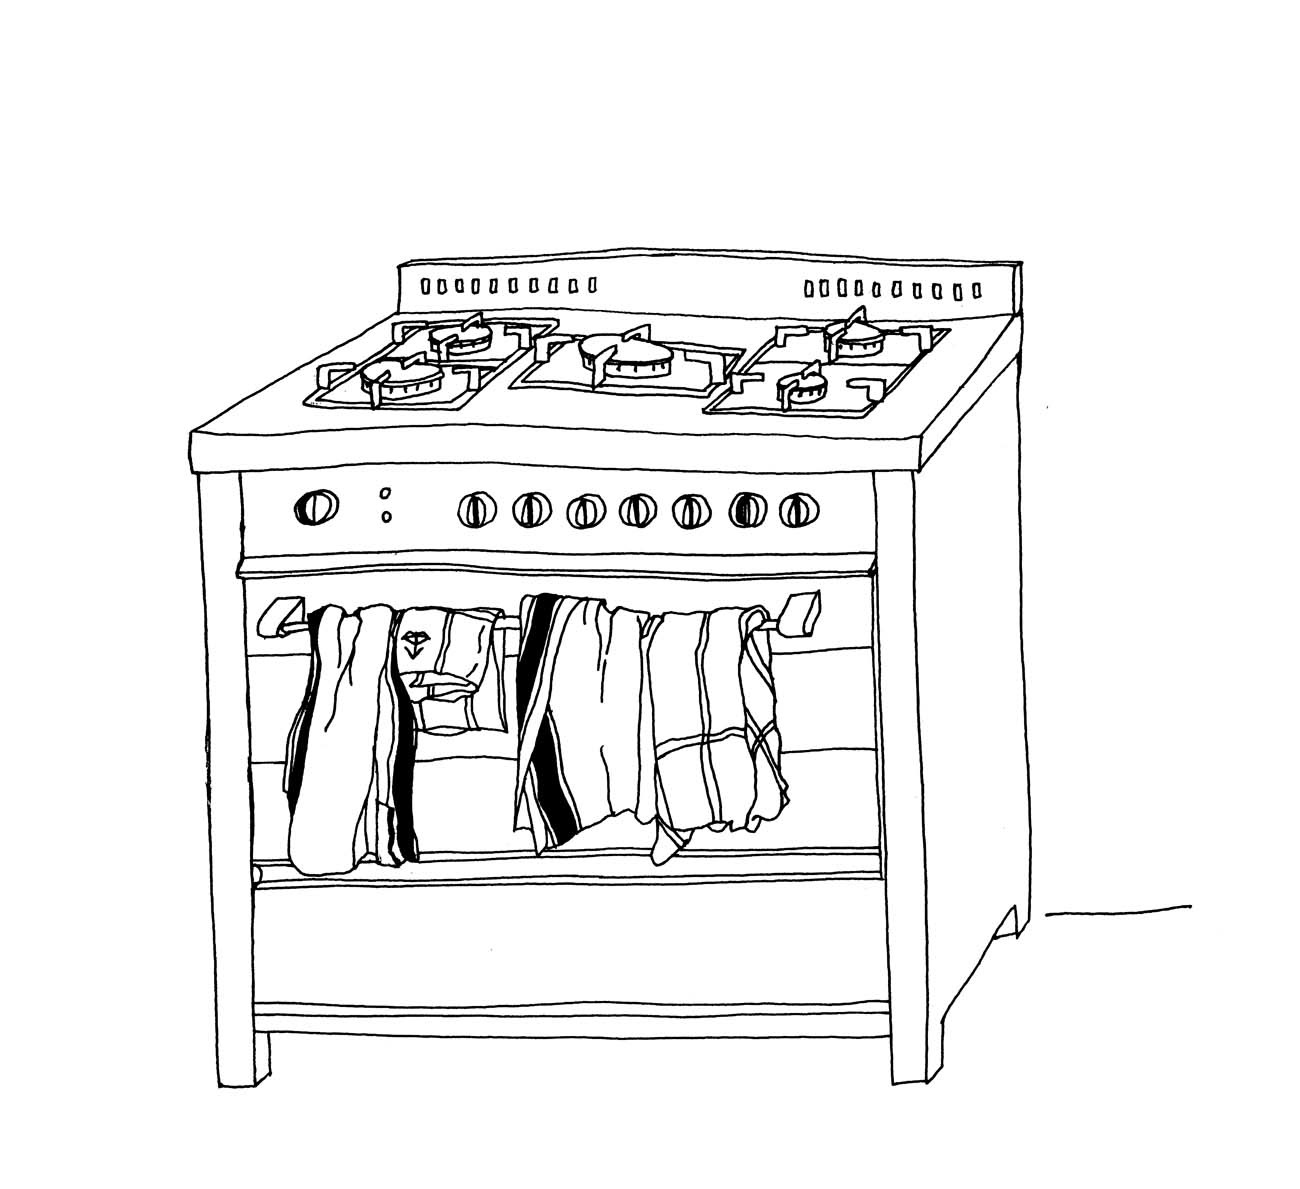 Oven and tea towels 2.jpg